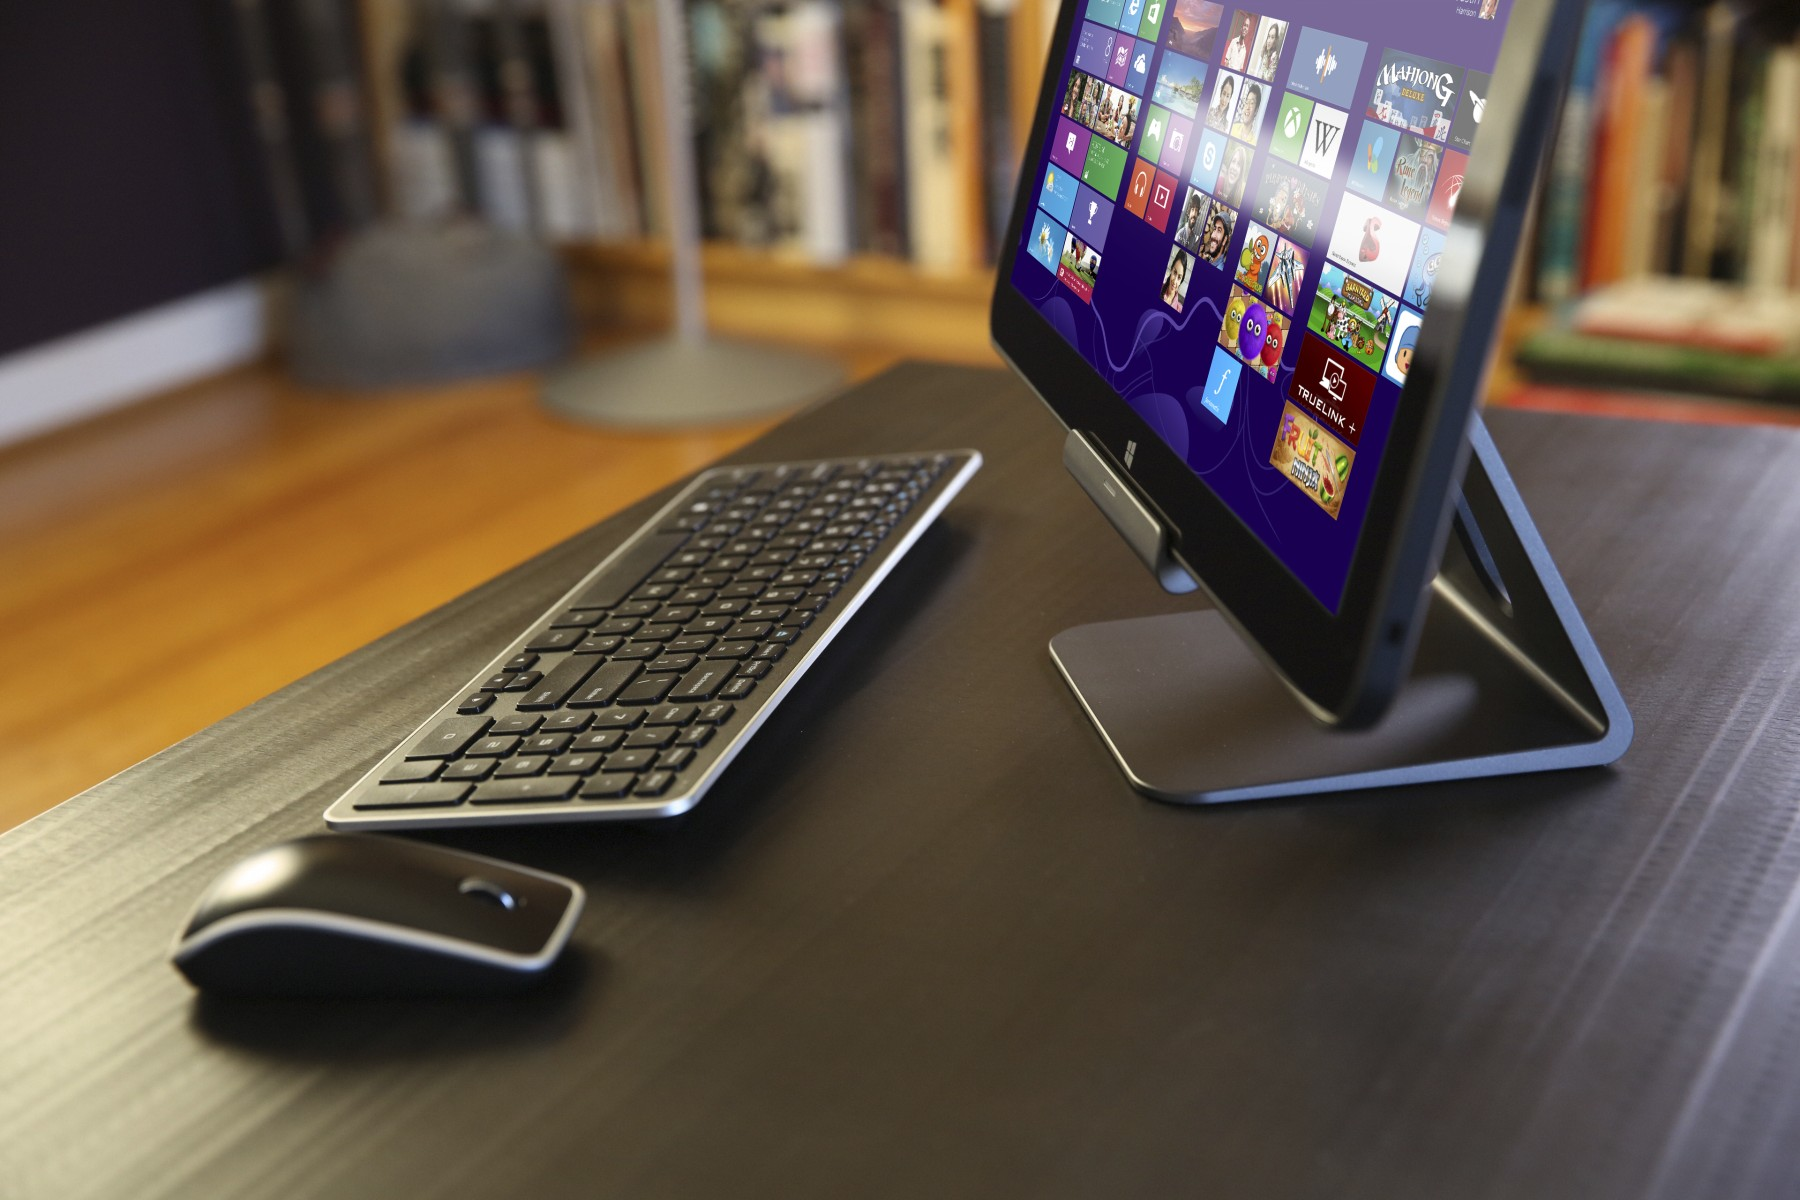 Photo Dell XPS 18 1810 Portable All In One Desktop Computer